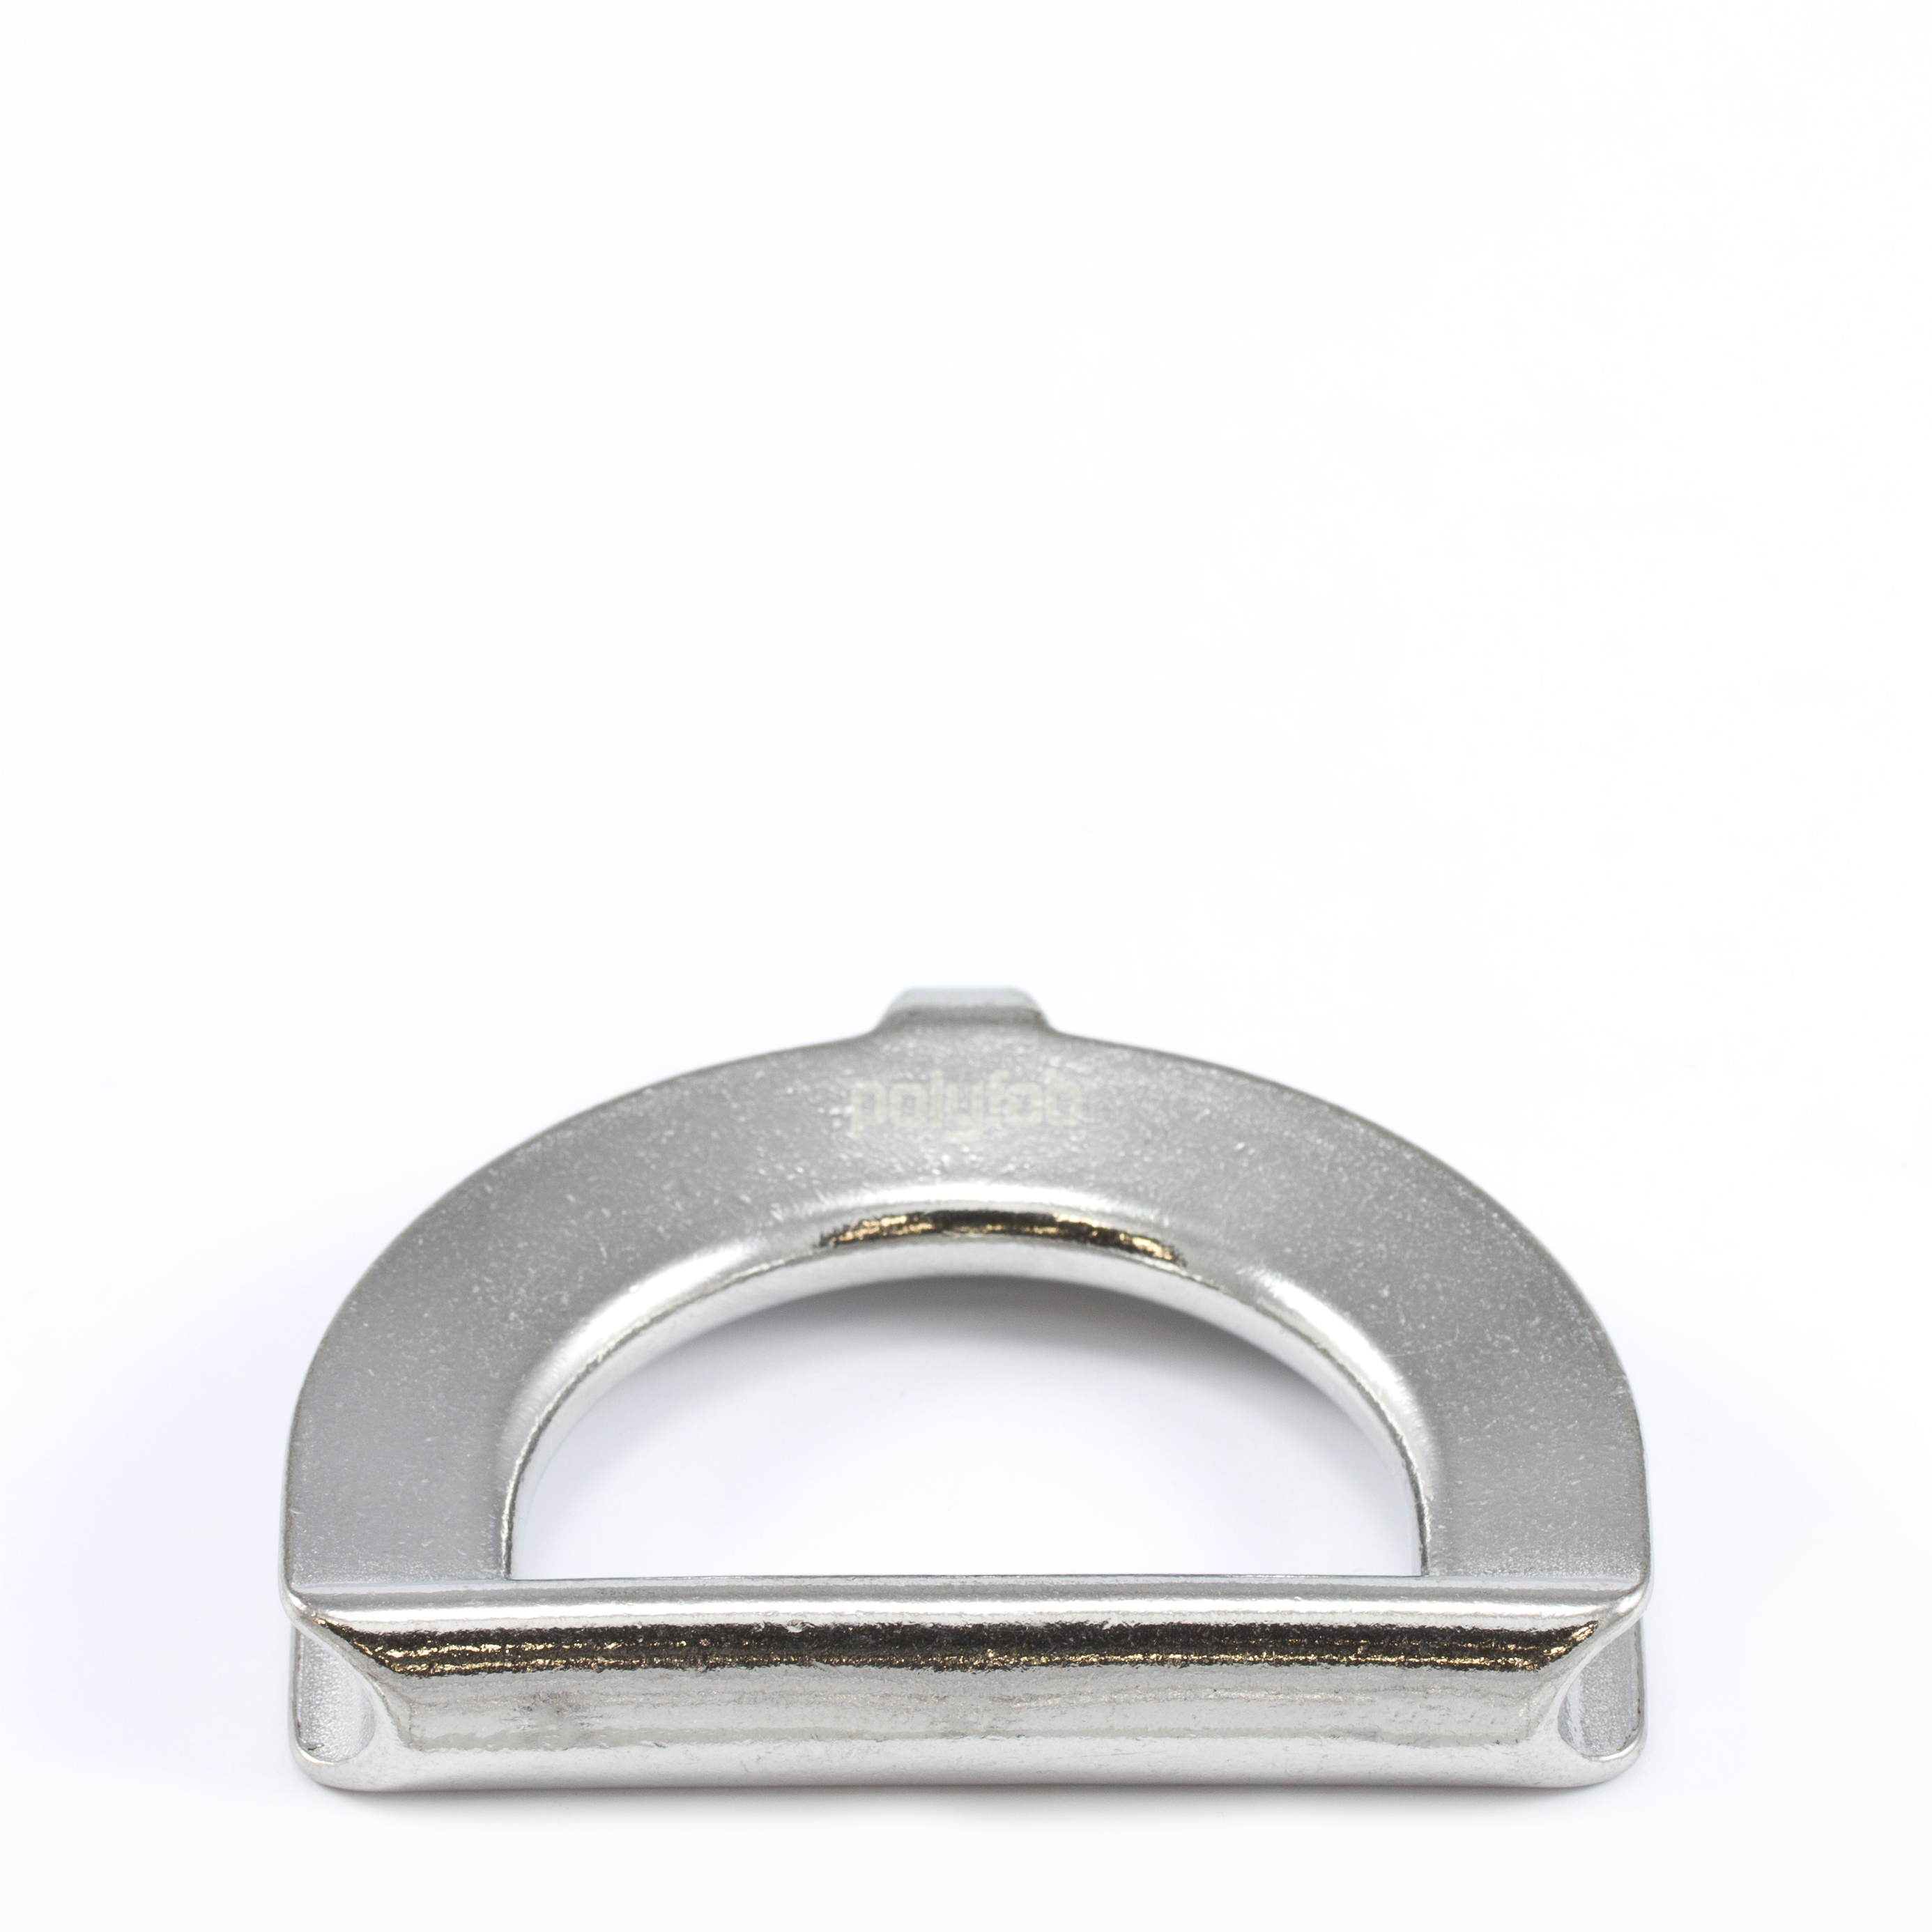 Polyfab Pro Easy-Hold Dee Ring #SS-DRHD-10 10x55mm